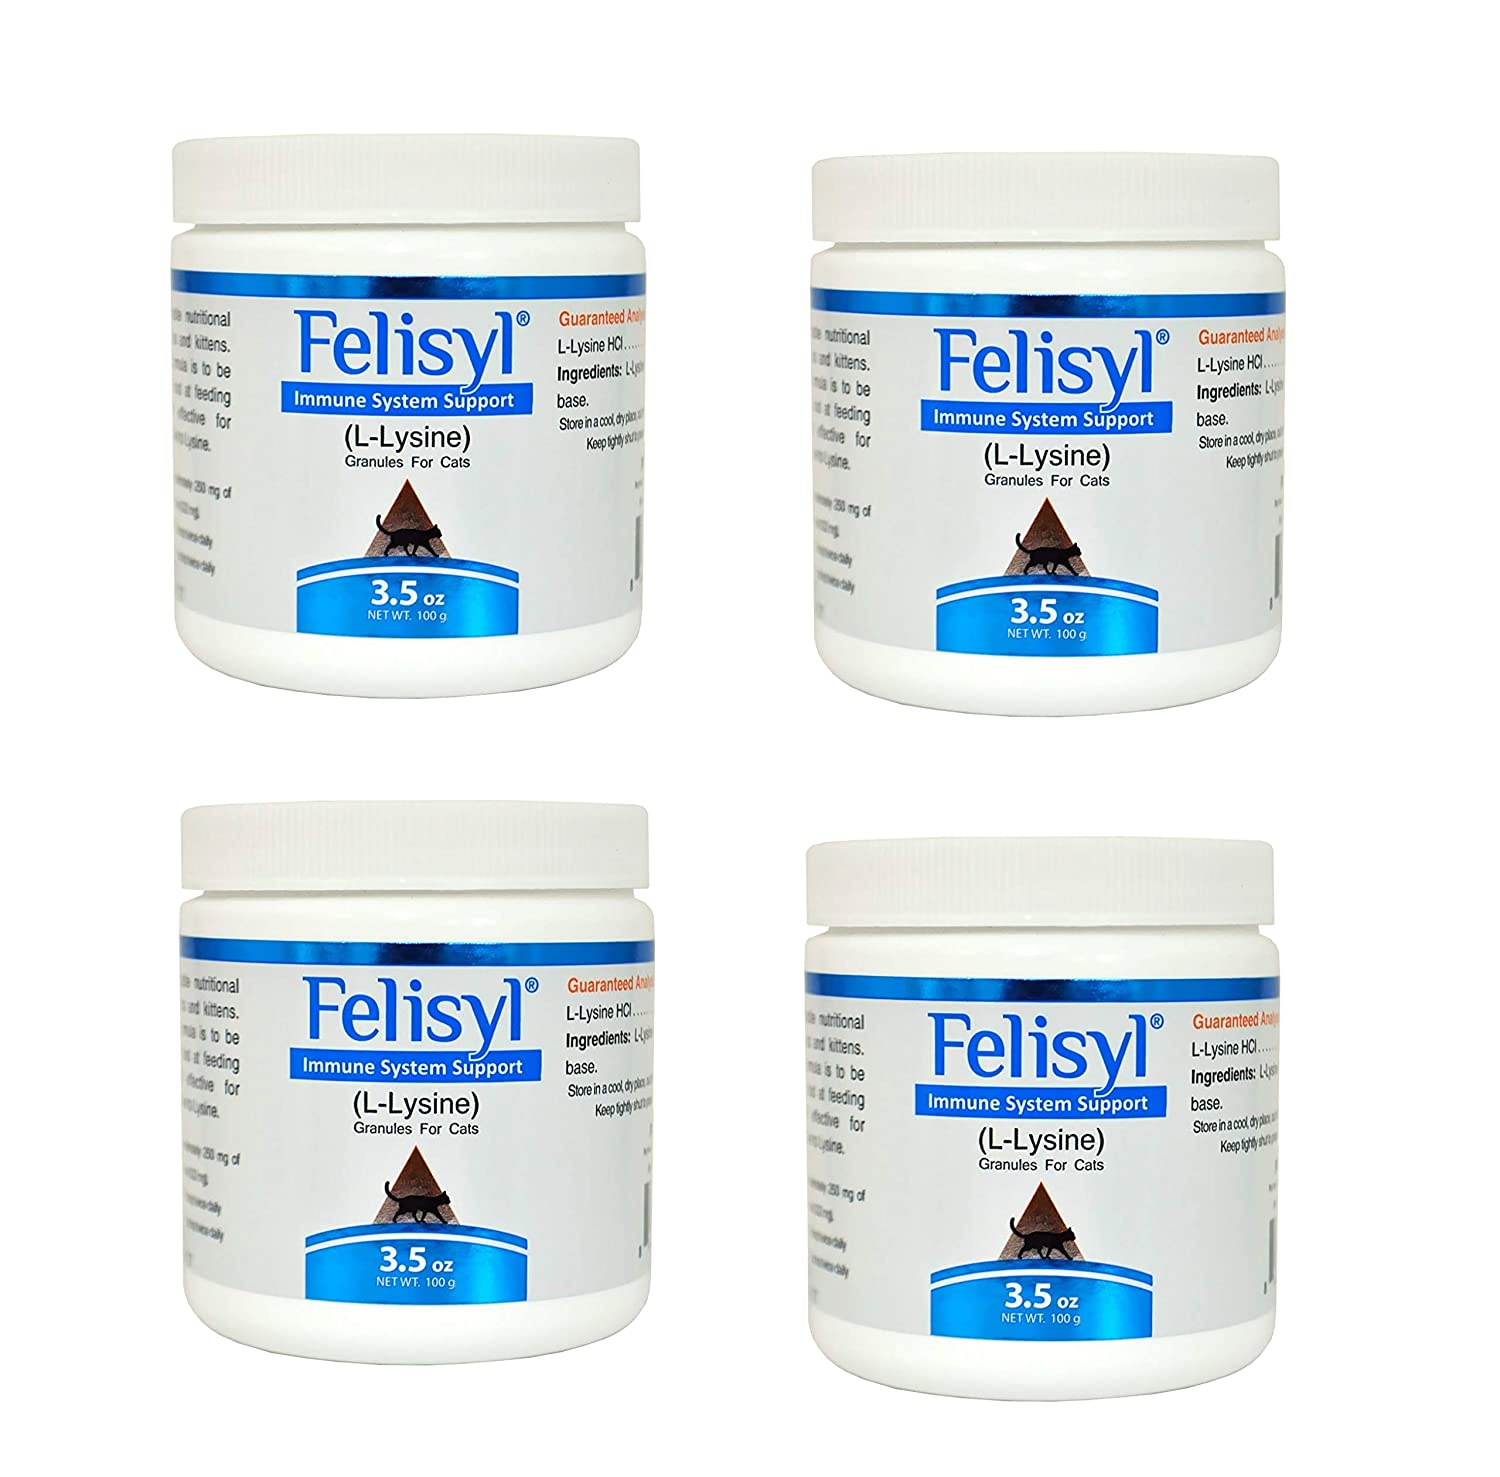 Felisyl Immune System Support Granules – Support Healthy Tissues, Respiratory and Vision for Cats – 3.5 oz